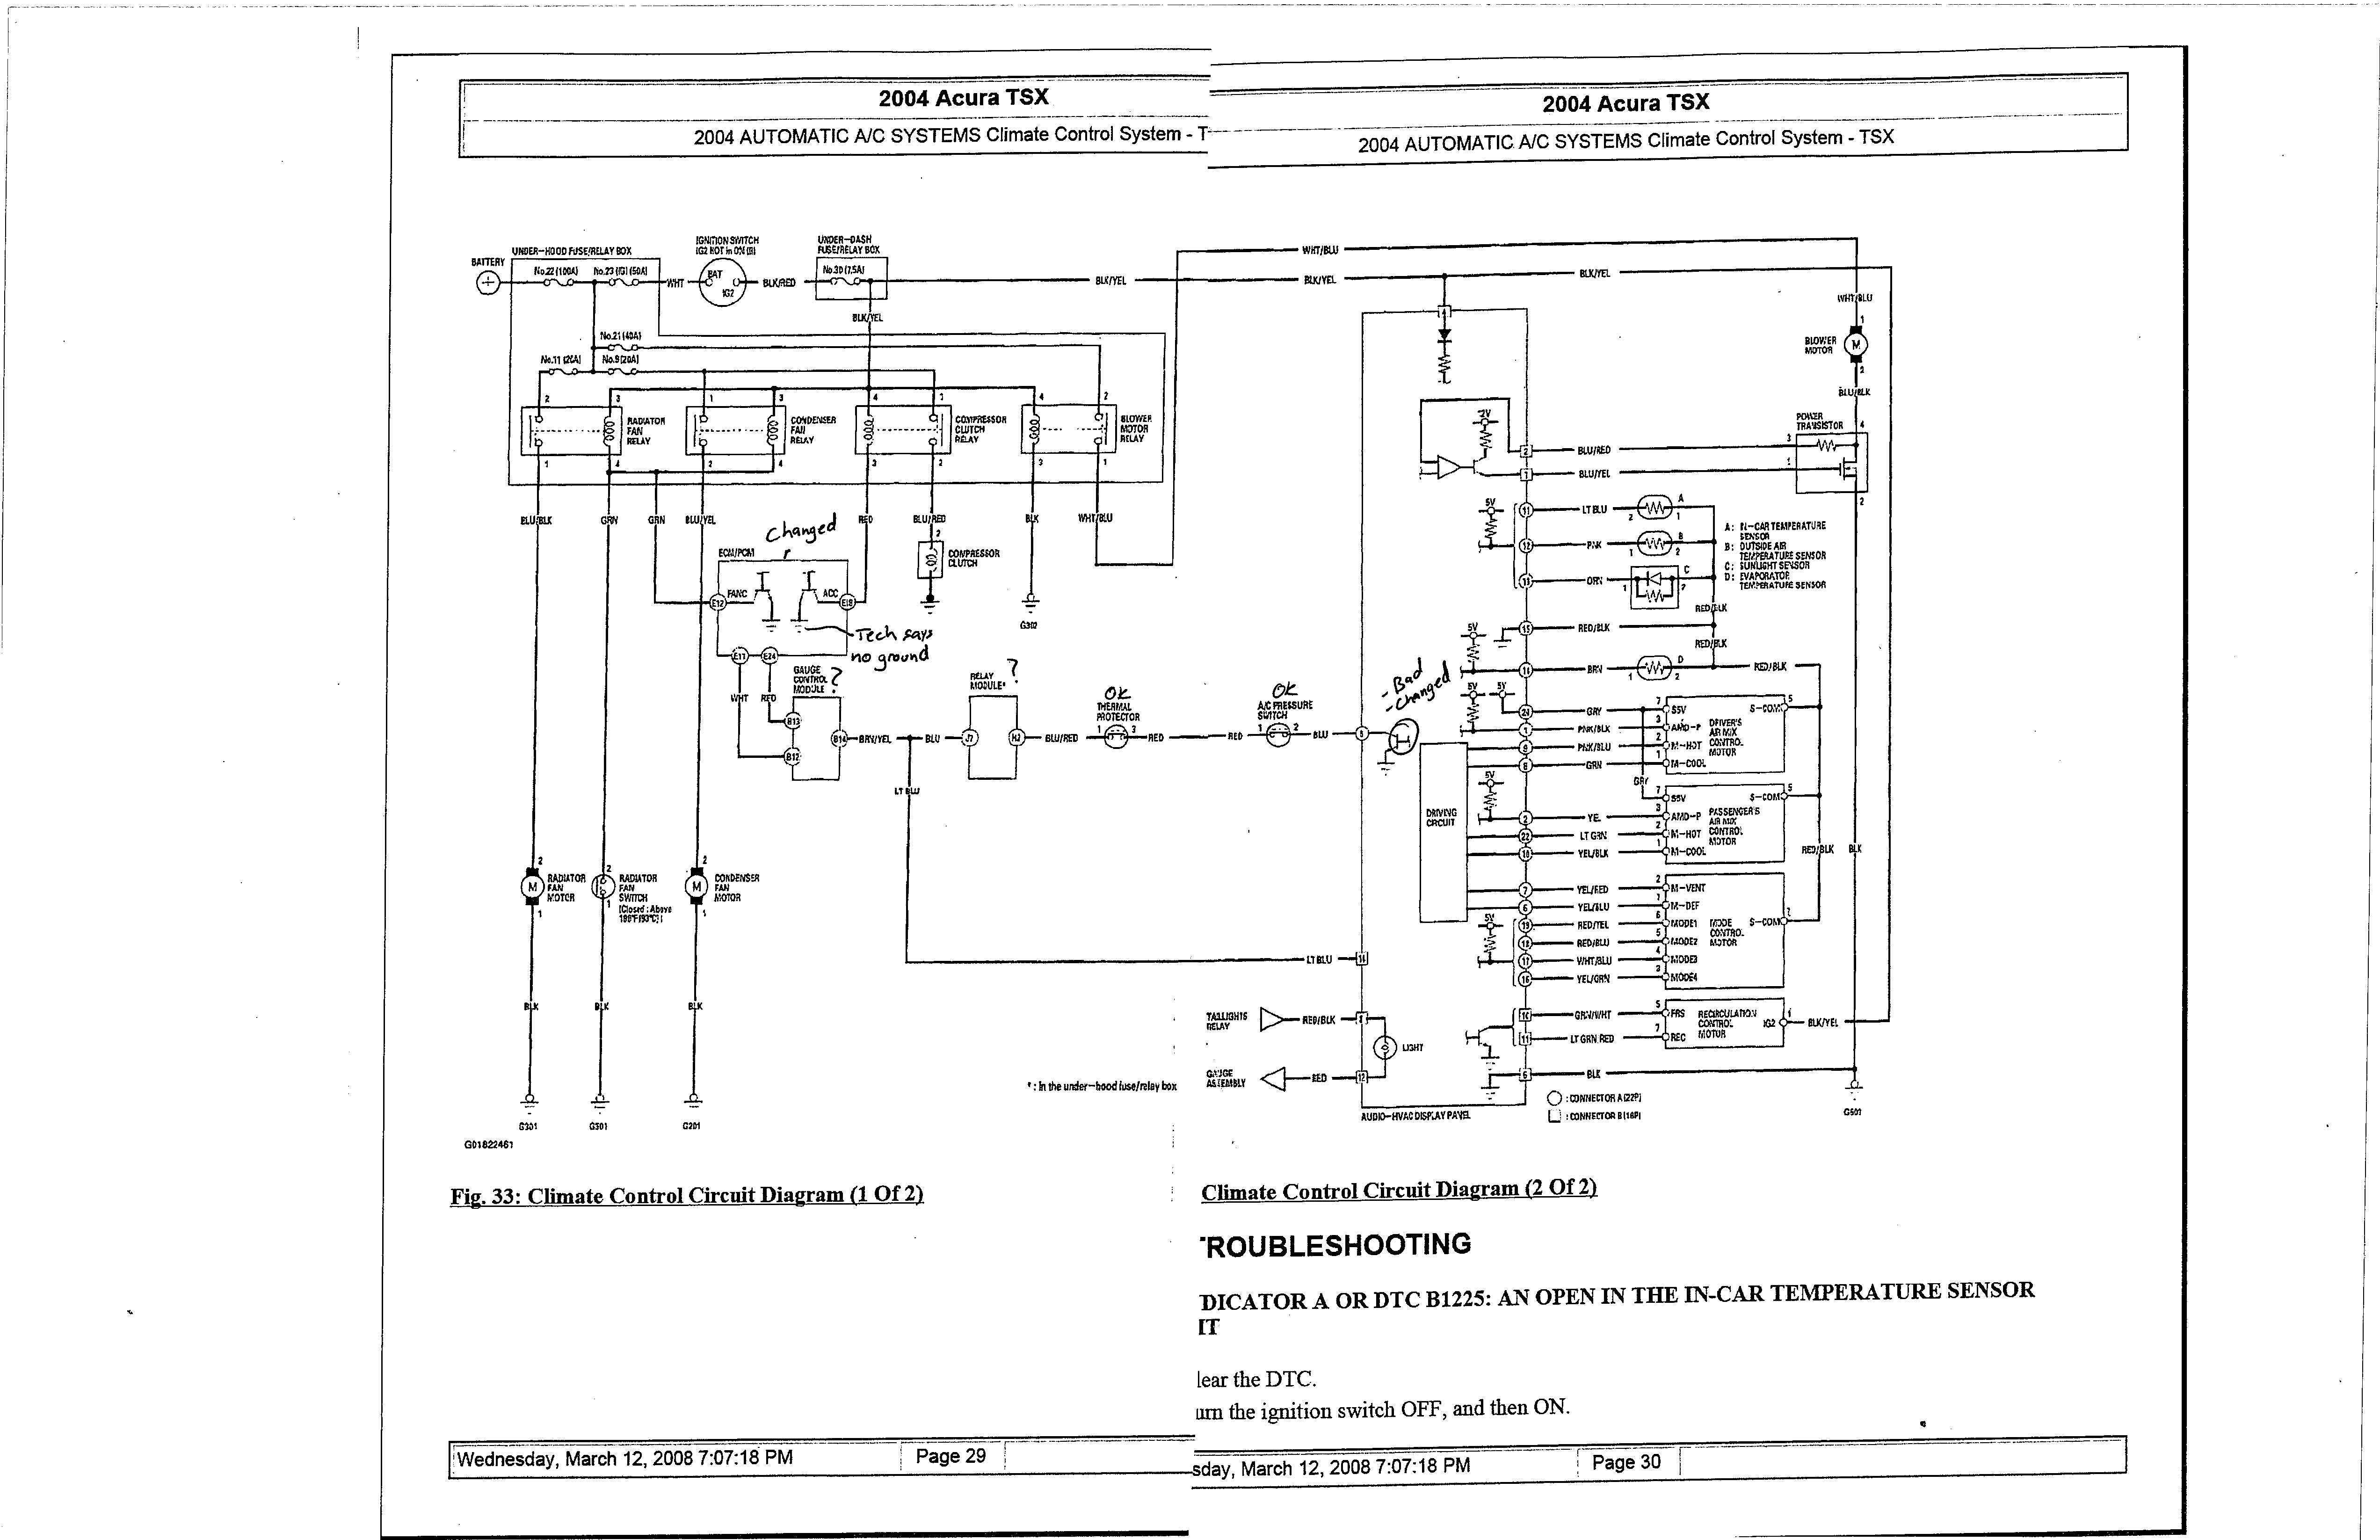 Wiring Diagram For Acura Tsx Hp Photosmart Printer